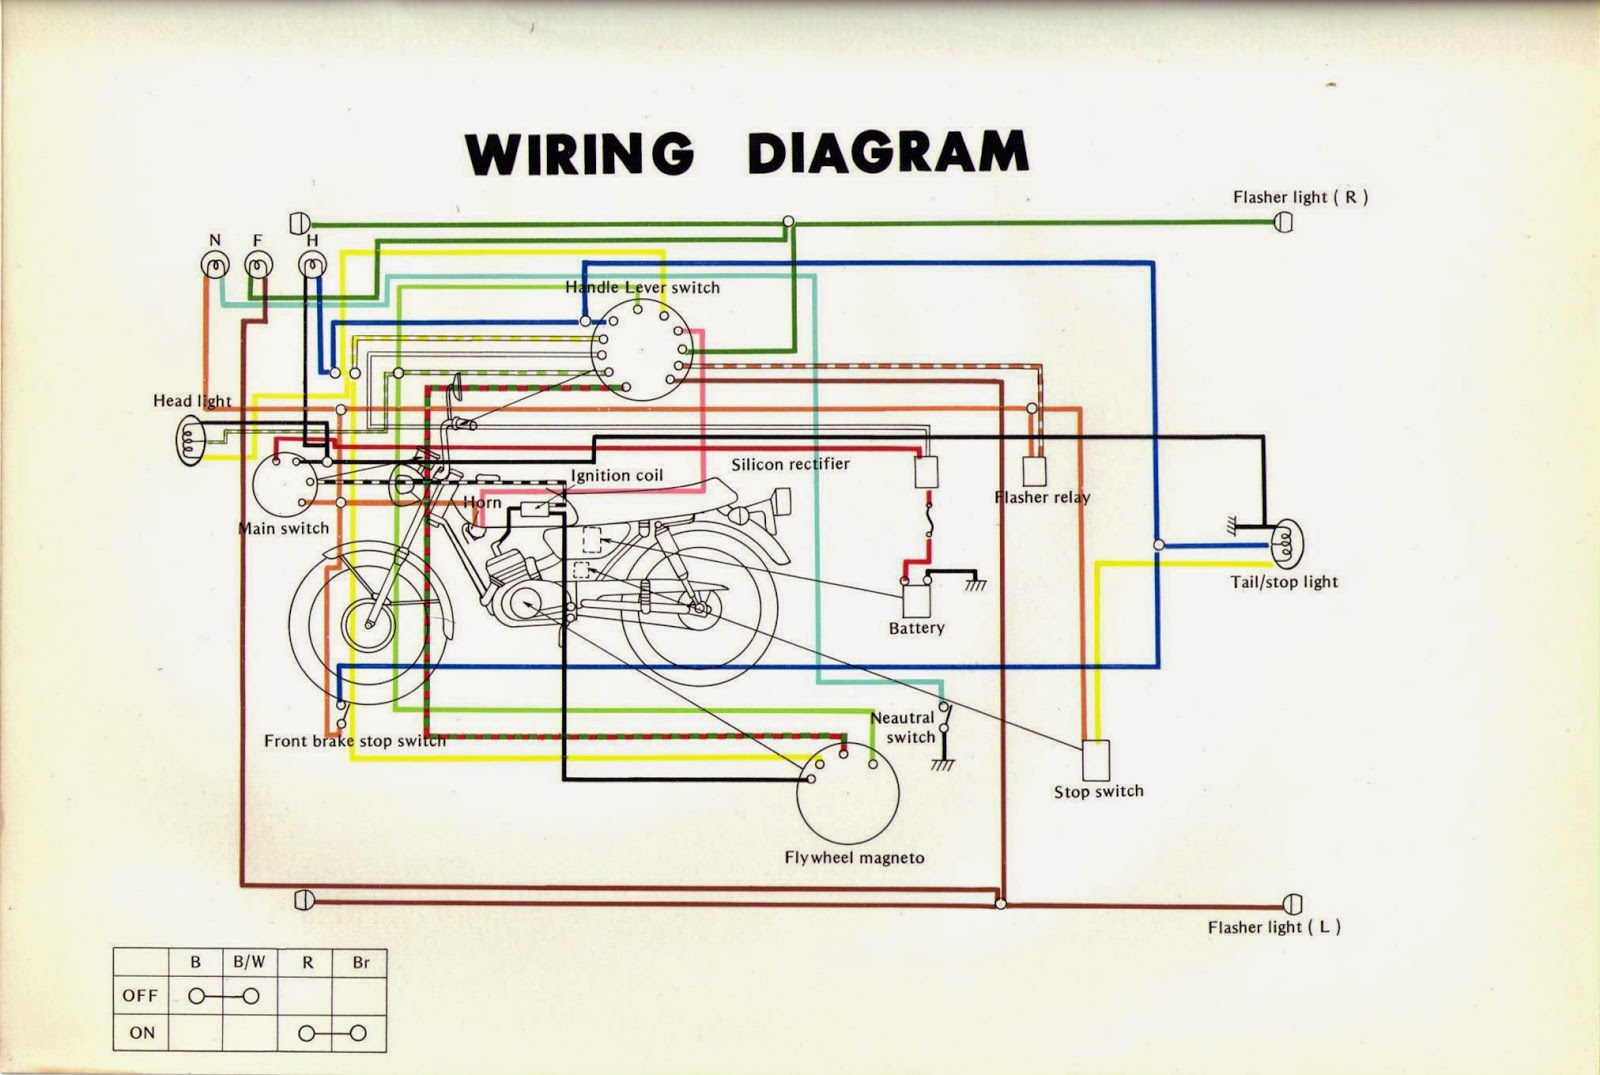 Yamaha service manual003 restoration yamaha ls3 1972 october 2014 yamaha dt 100 wiring diagram at bakdesigns.co